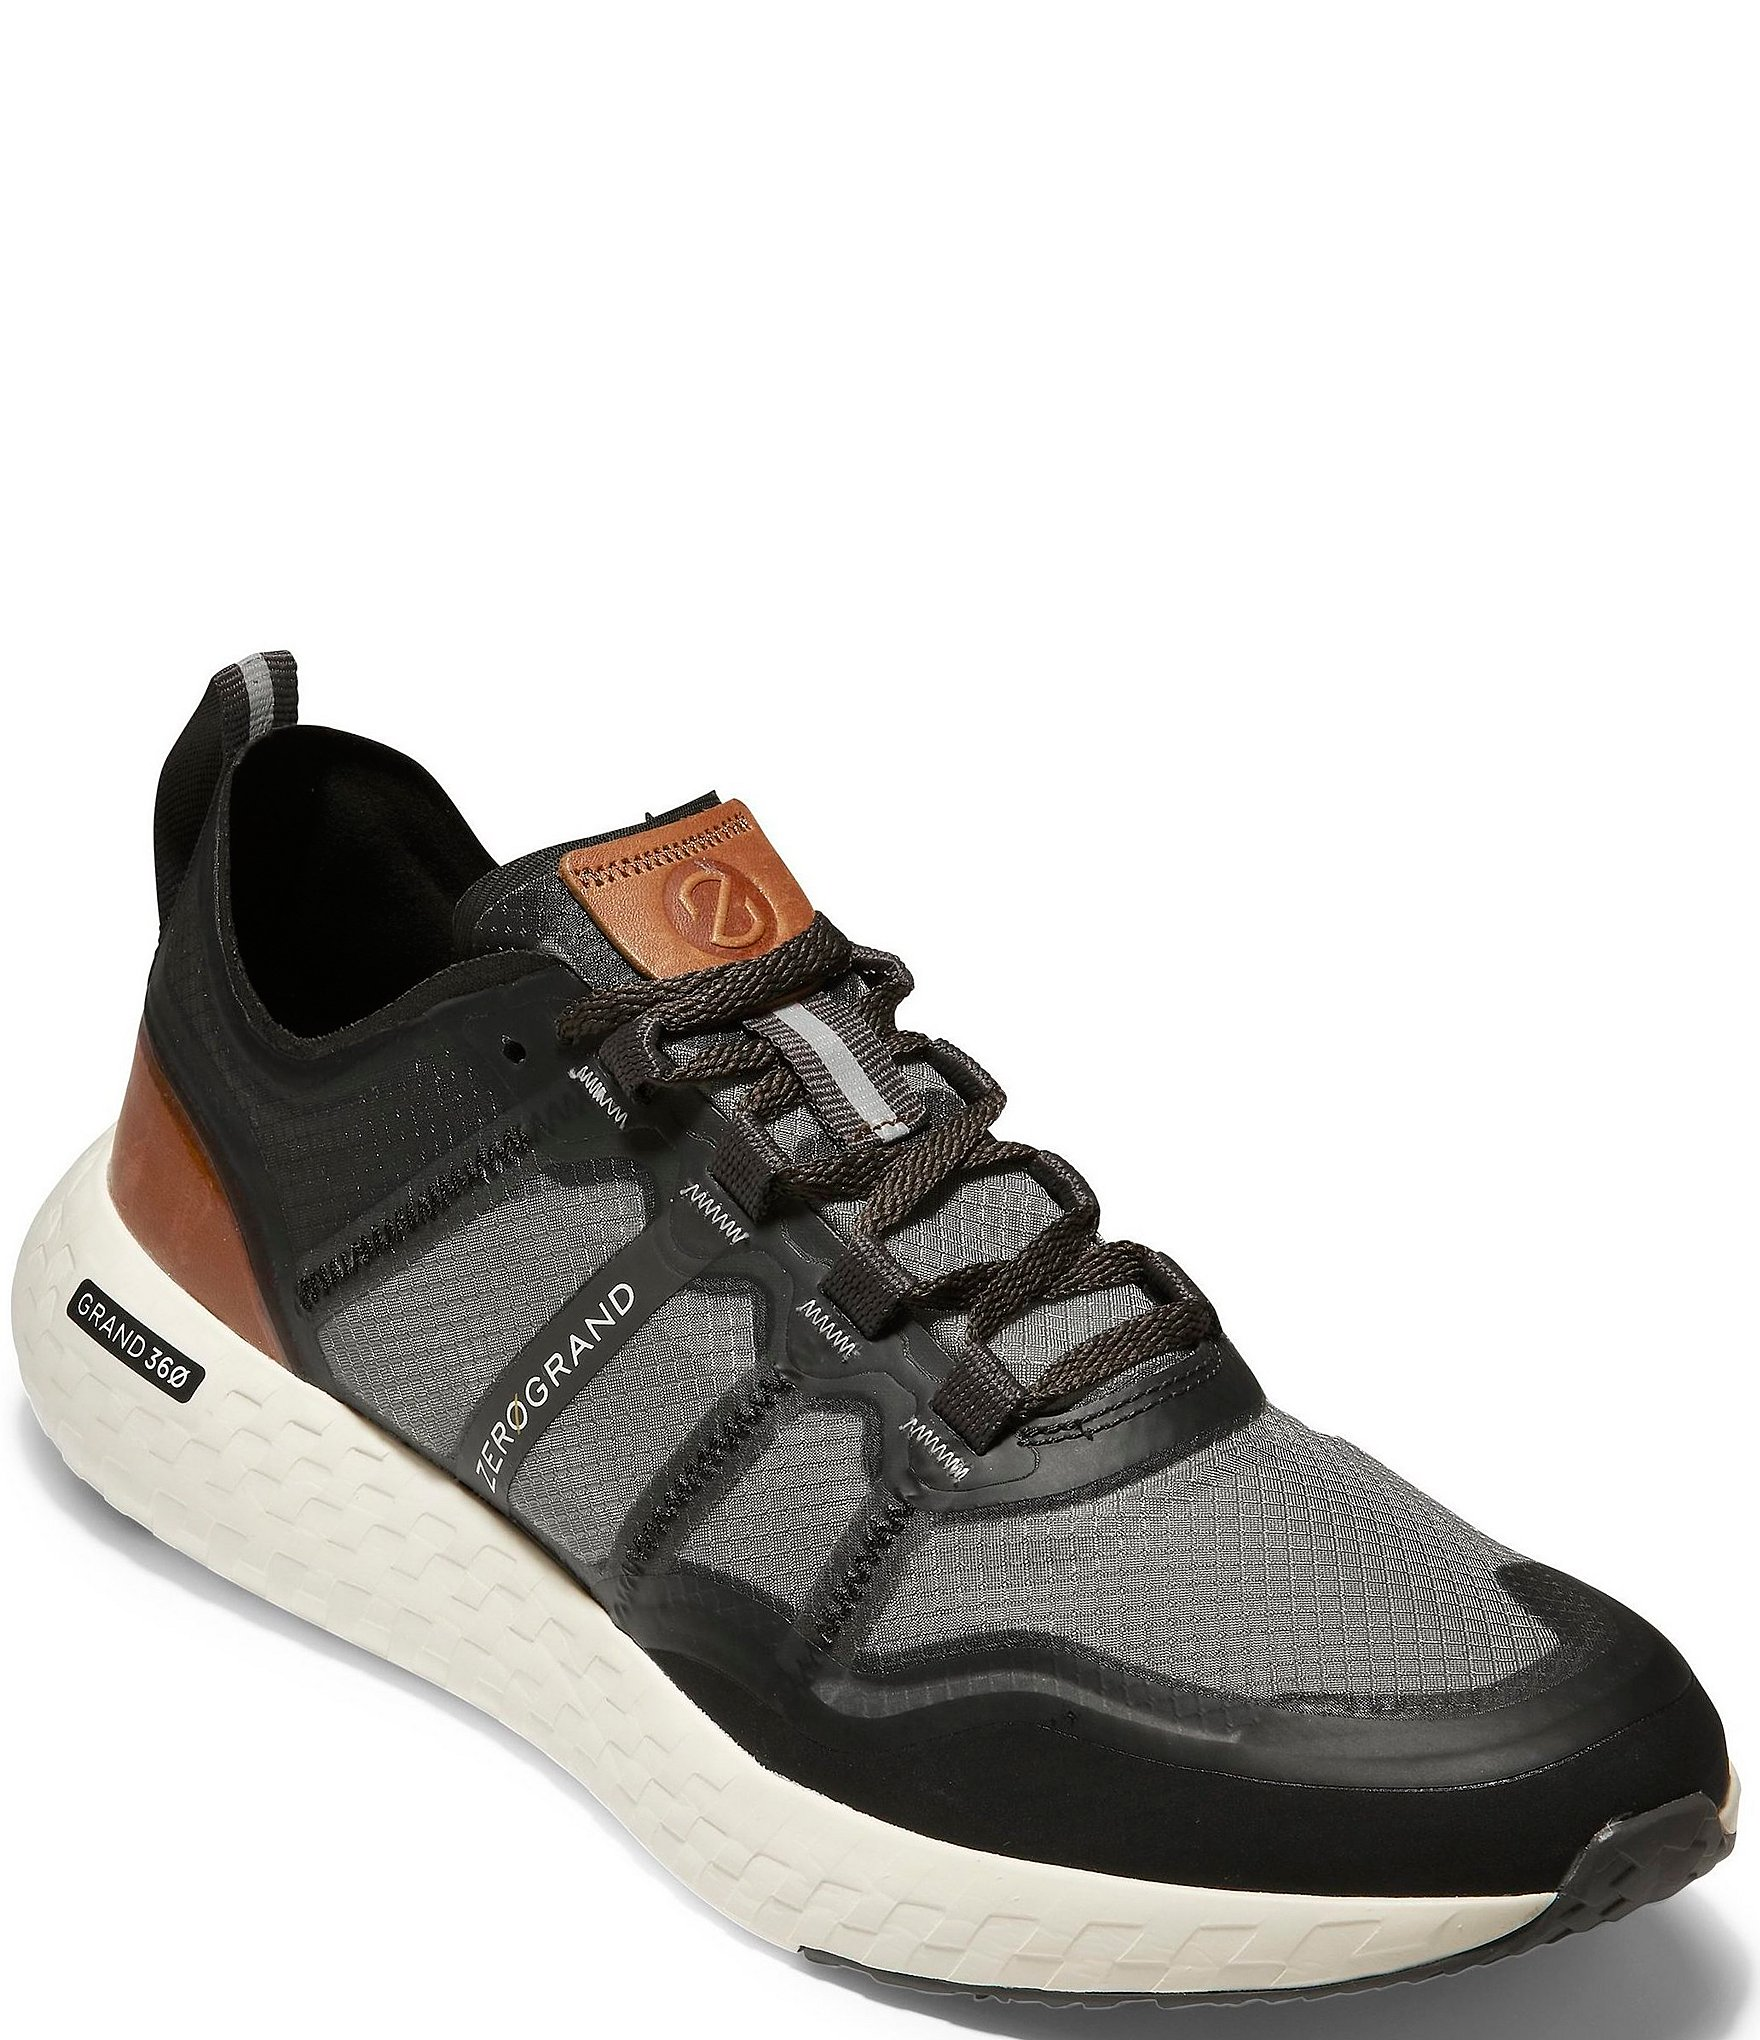 Cole Haan Men's Extended Size Shoes